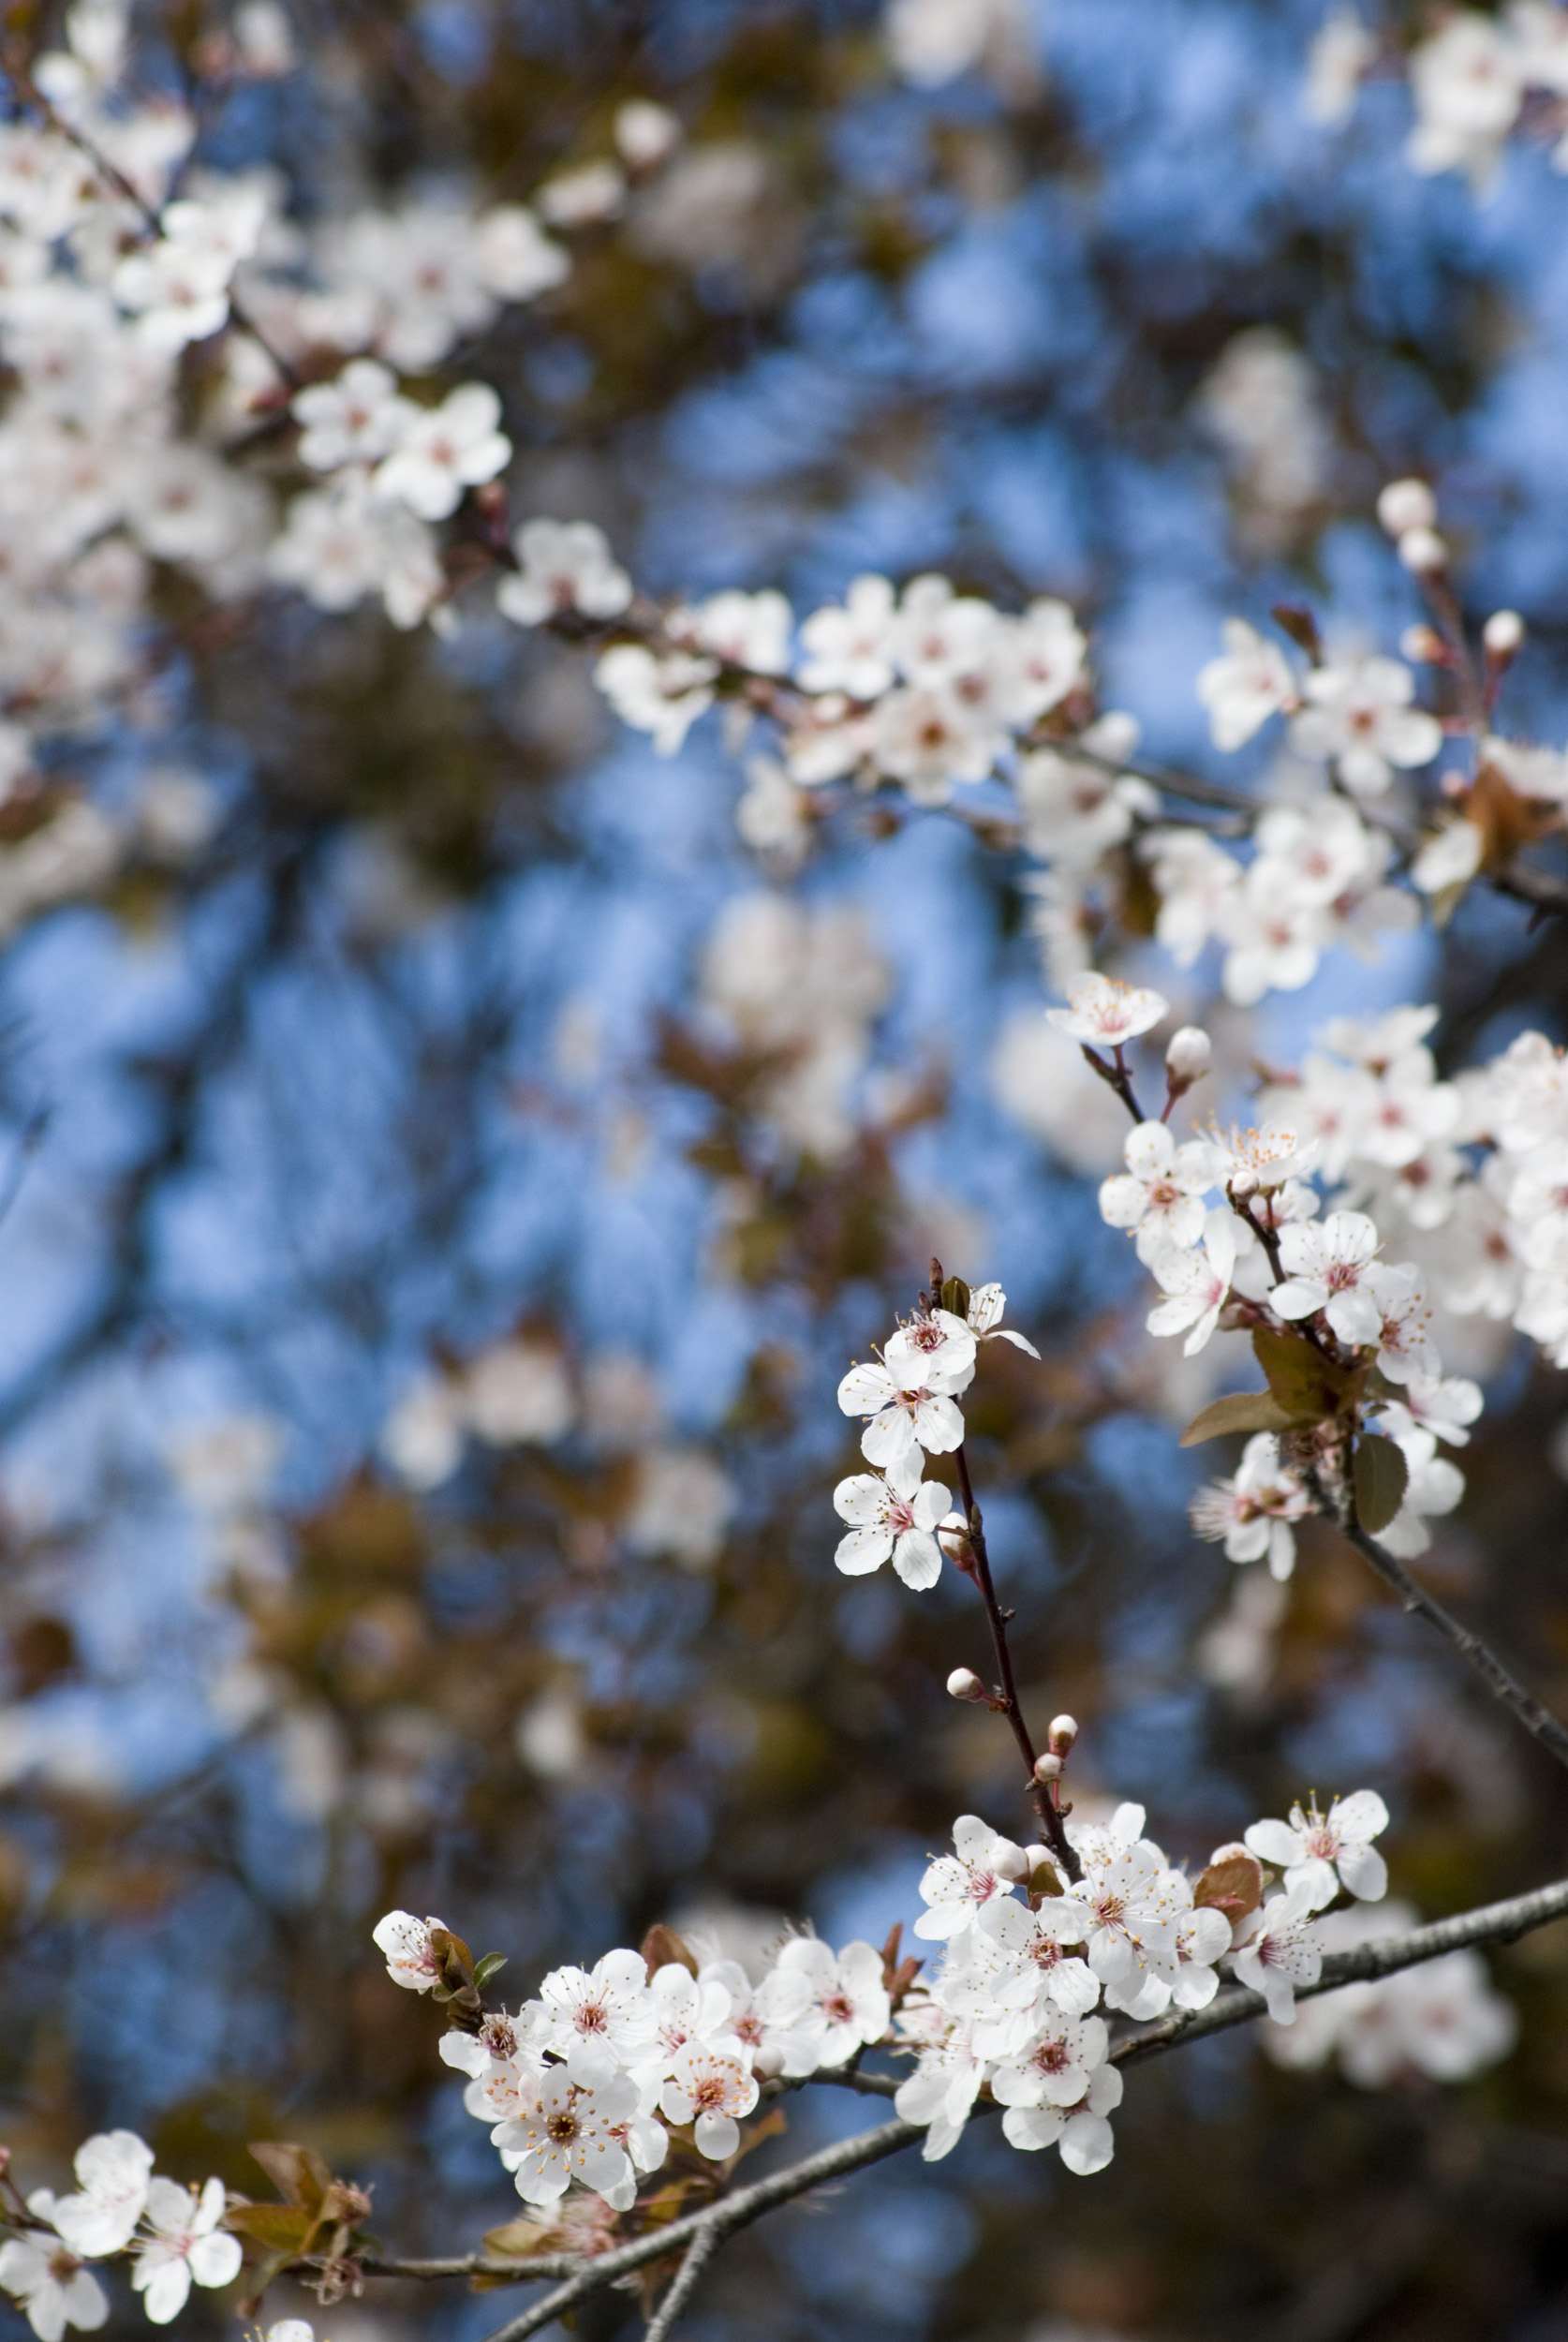 plum_tree_blossom.jpg - Fresh spring blossom of the flowering plum or prunus growing in a colourful garden with shallow depth of field